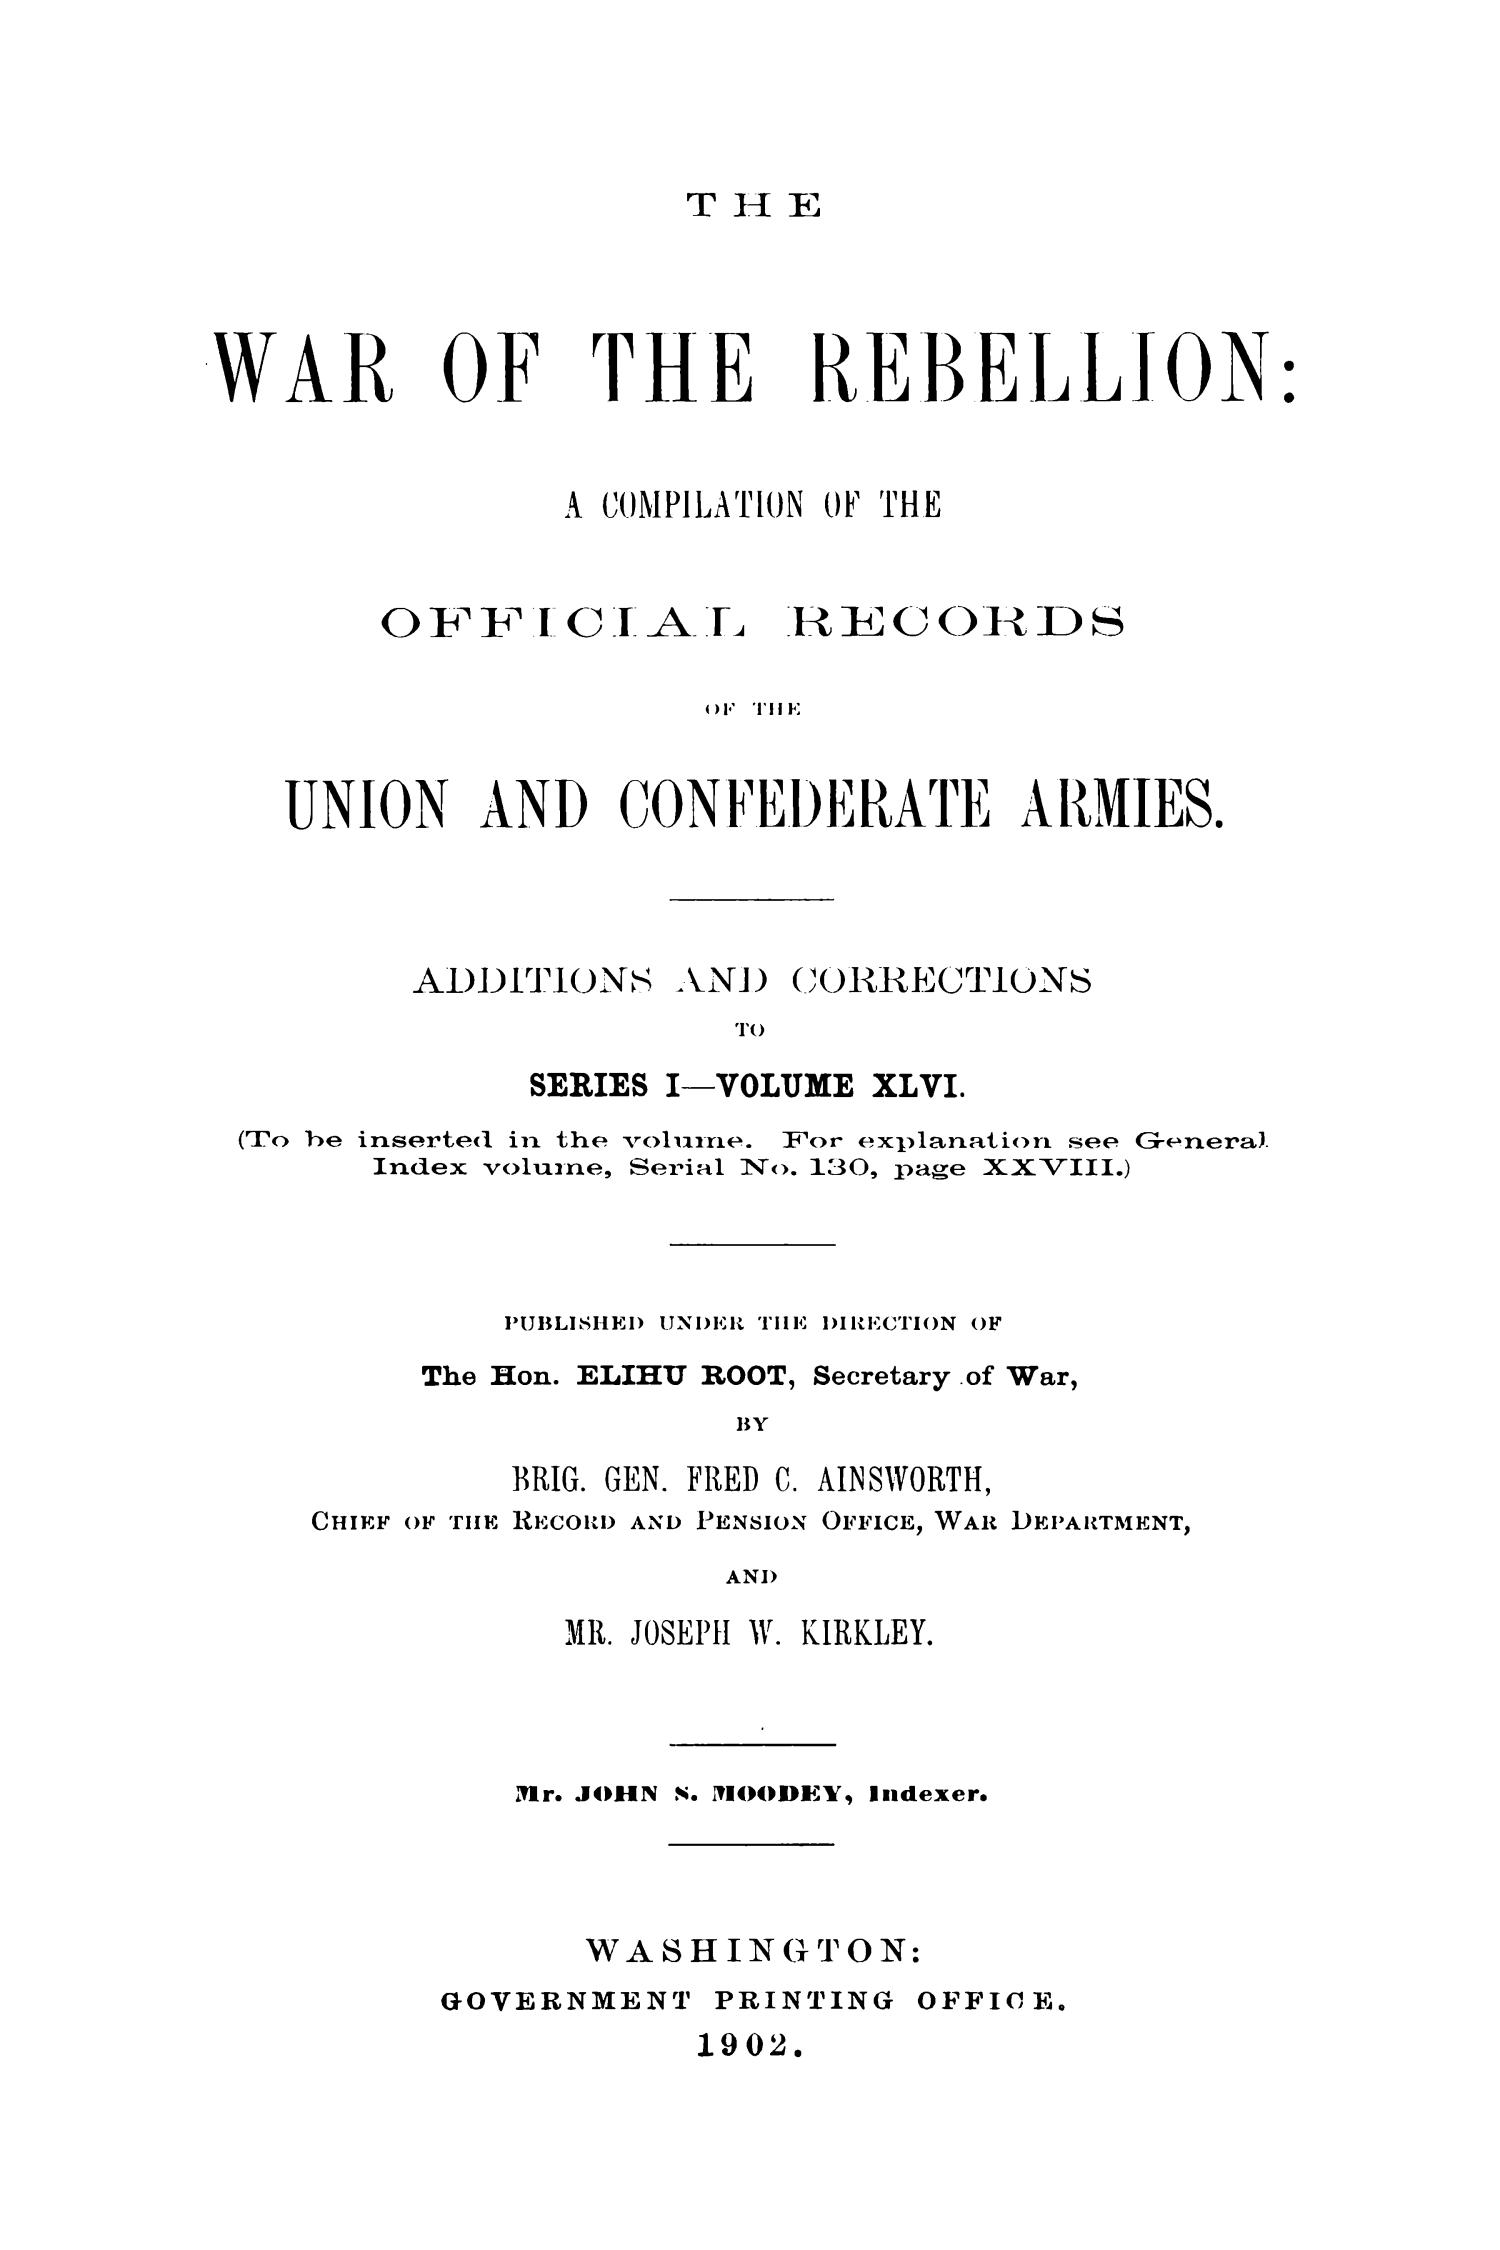 The War of the Rebellion: A Compilation of the Official Records of the Union And Confederate Armies. Additions and Corrections to Series 1, Volume 46.                                                                                                      1